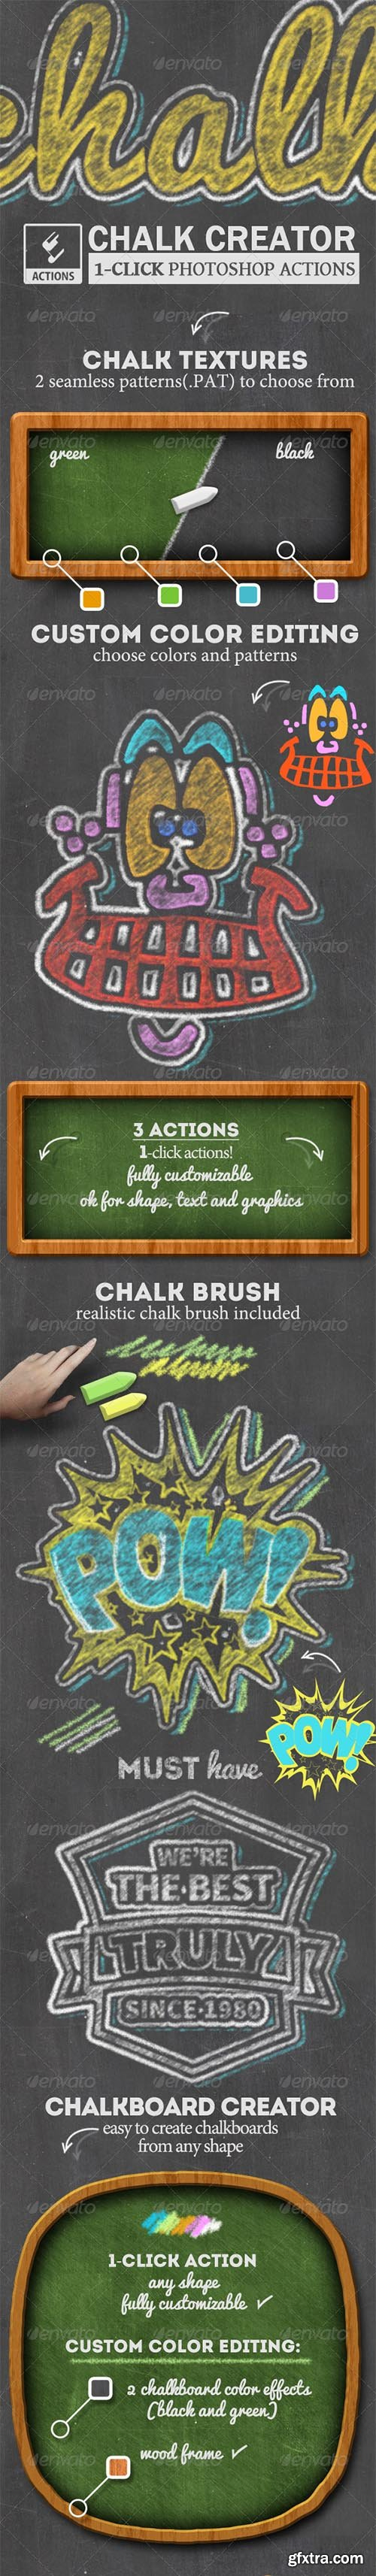 Graphicriver Chalk and Chalkboard Photoshop Creator 8174689